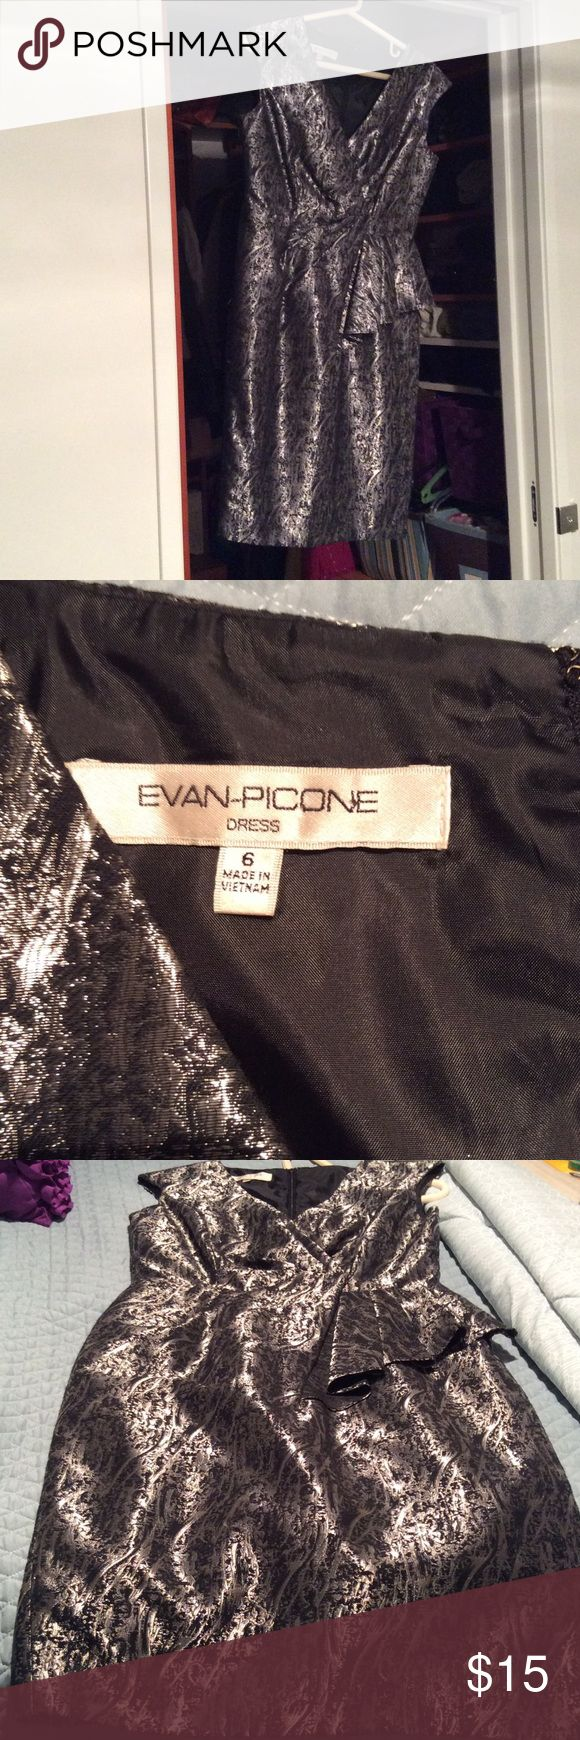 Evan picone dress Beautiful used black and silver dress, perfect for party or wedding, super comfortable, got a lot of complements on it. Evan Picone Dresses Midi